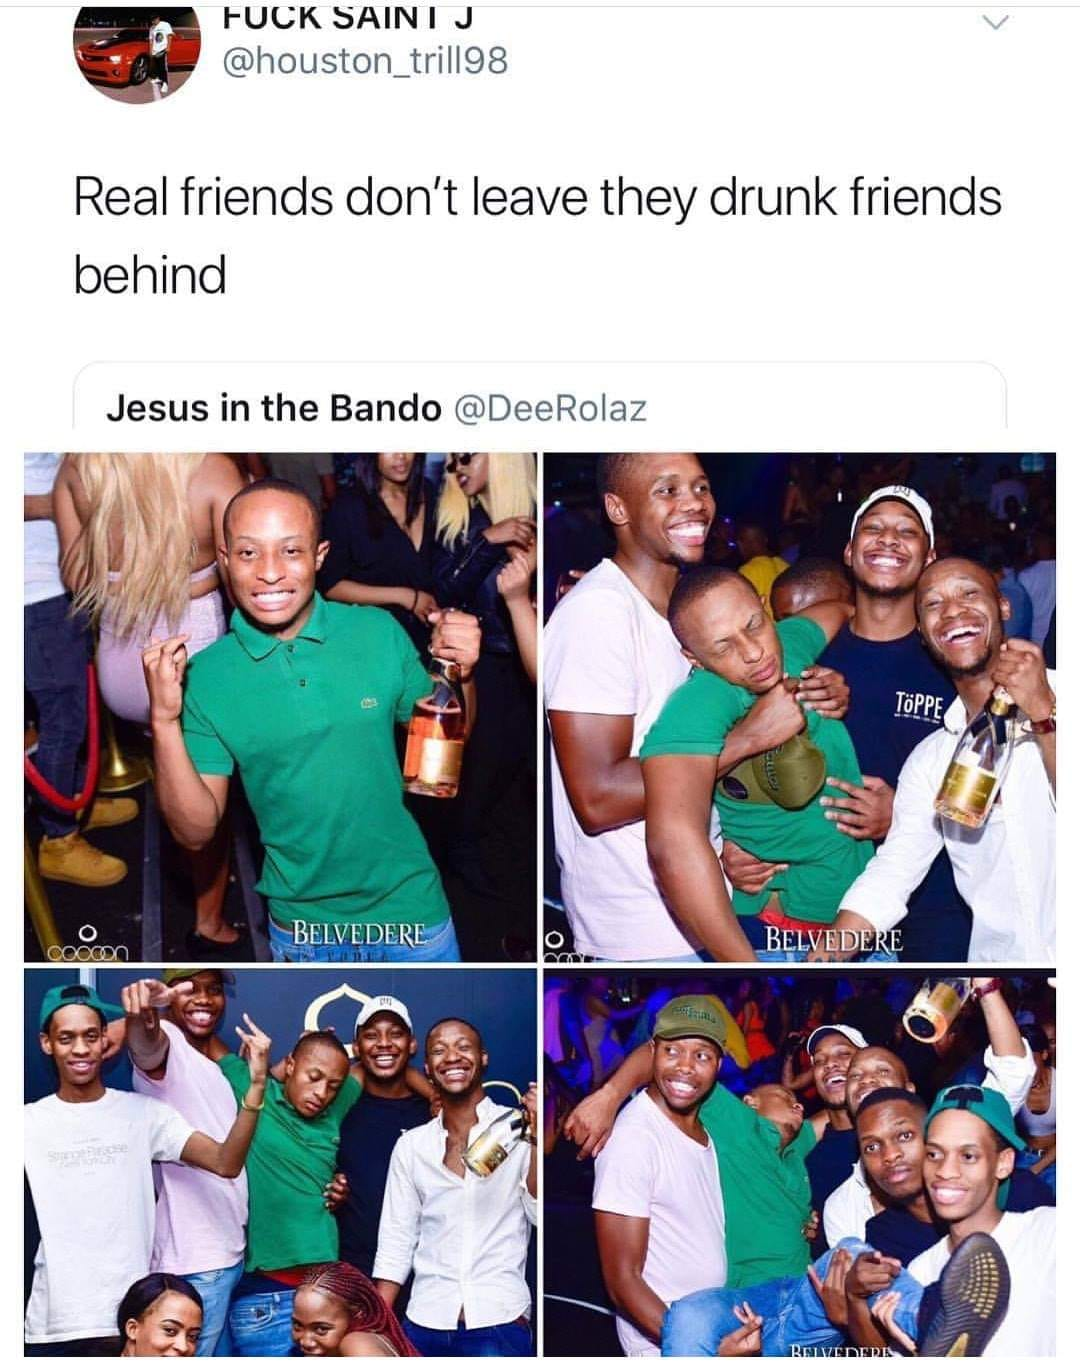 real friends don't leave their drunk friends behind